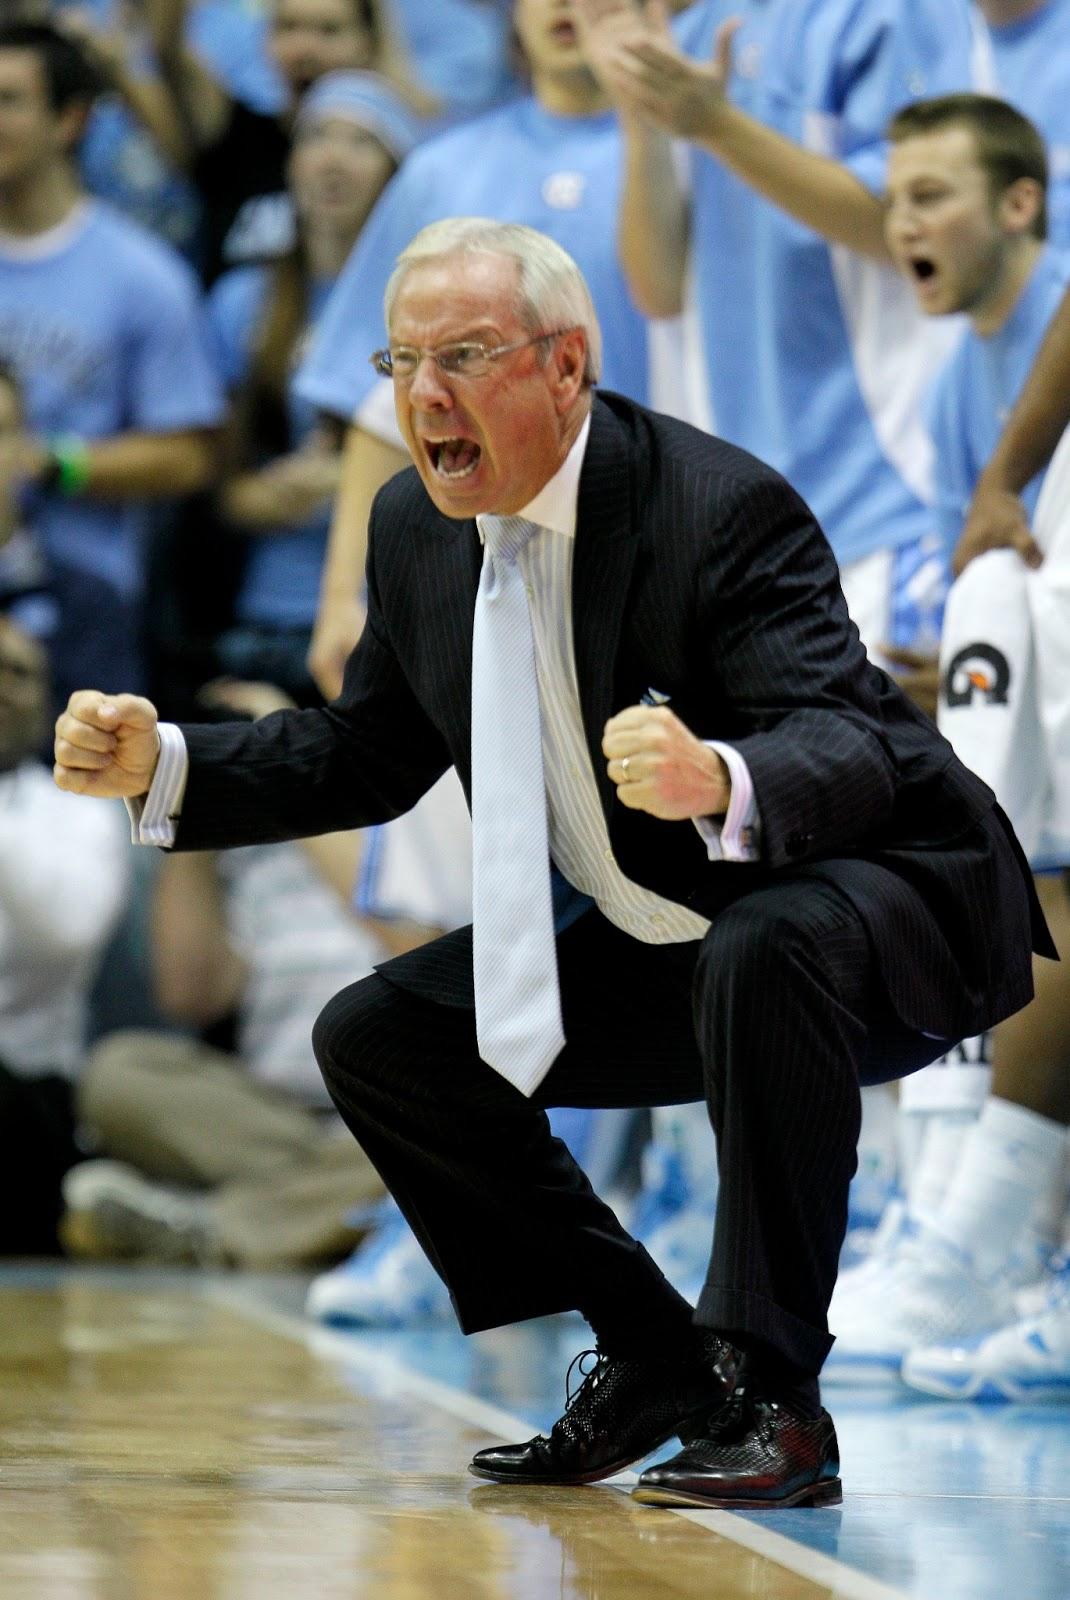 Bobby knight throwing chair gif -  Pooping Into